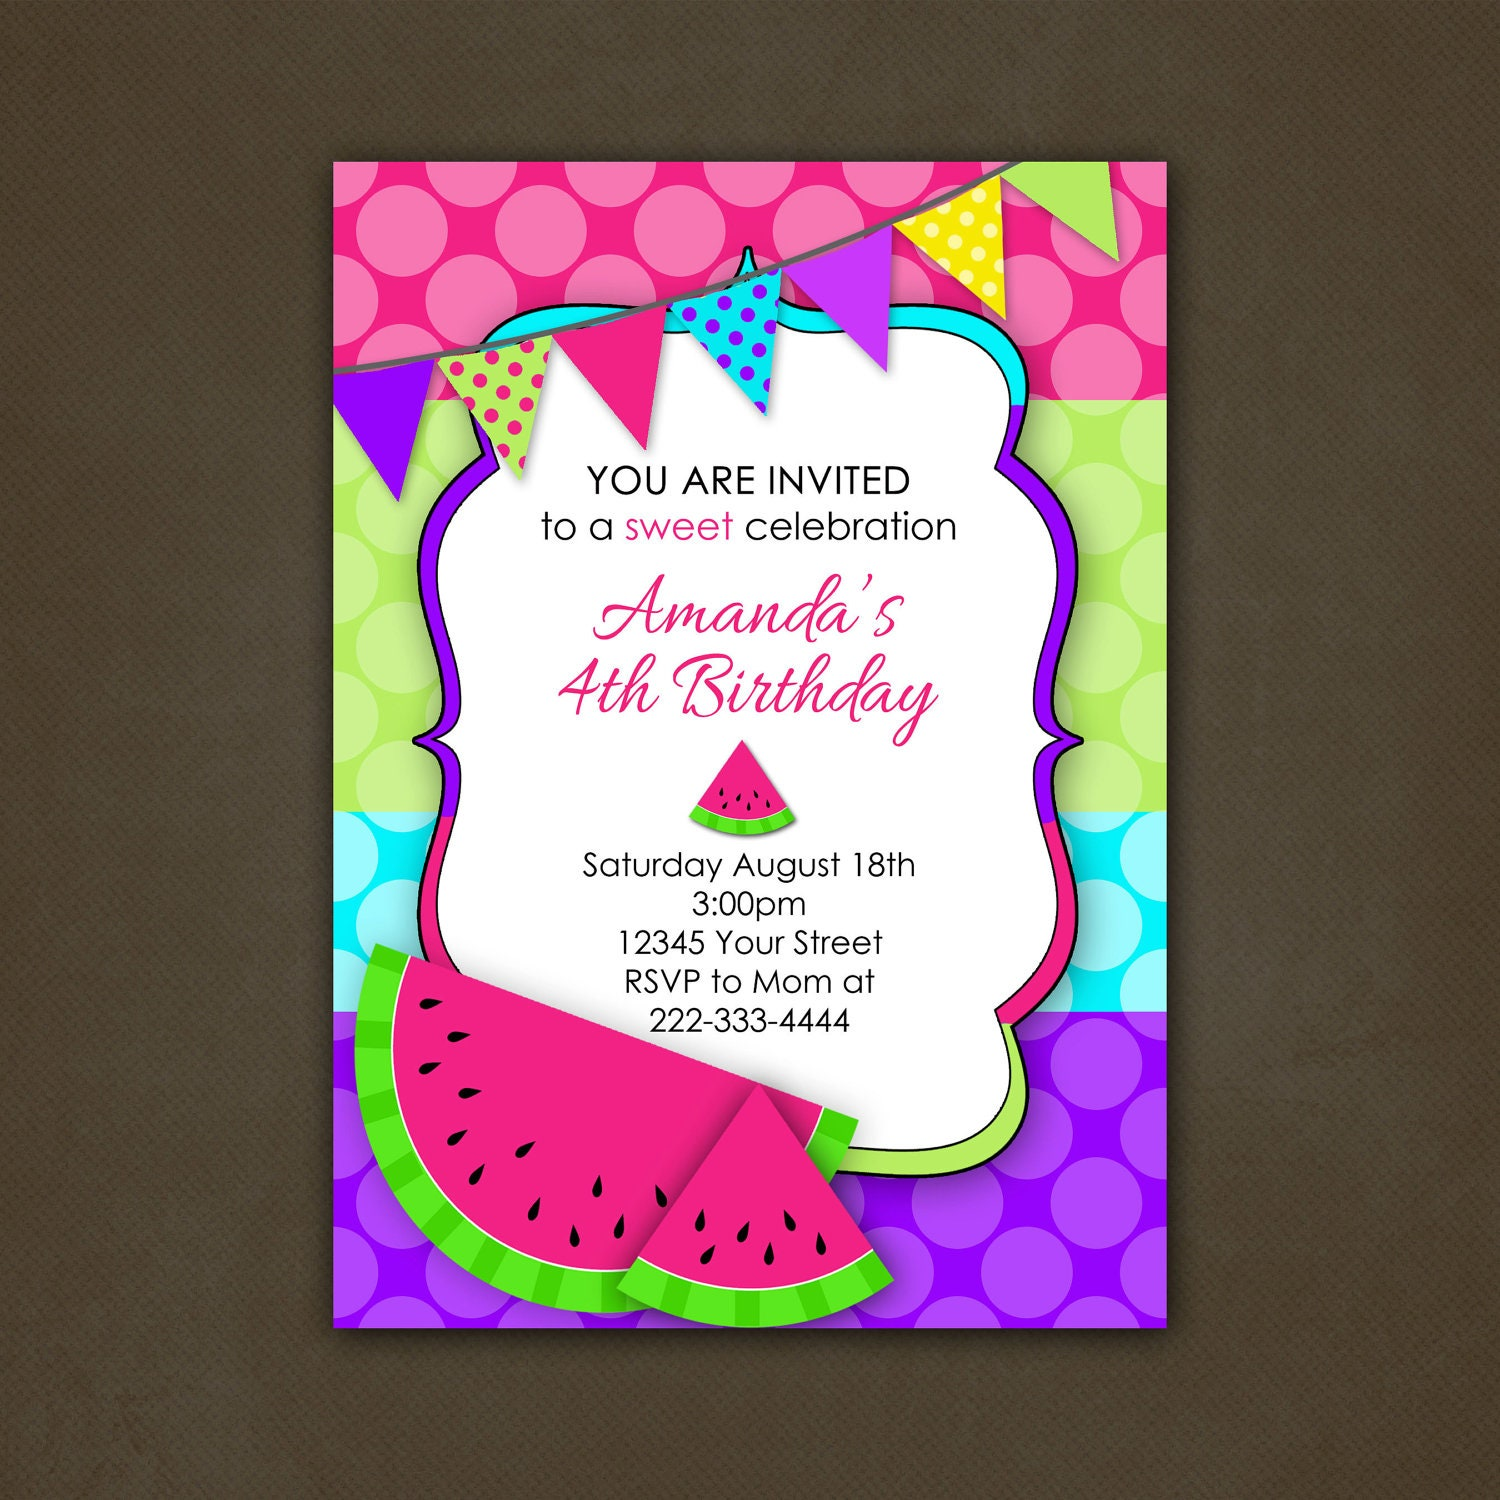 Watermelon Birthday Invitations could be nice ideas for your invitation template